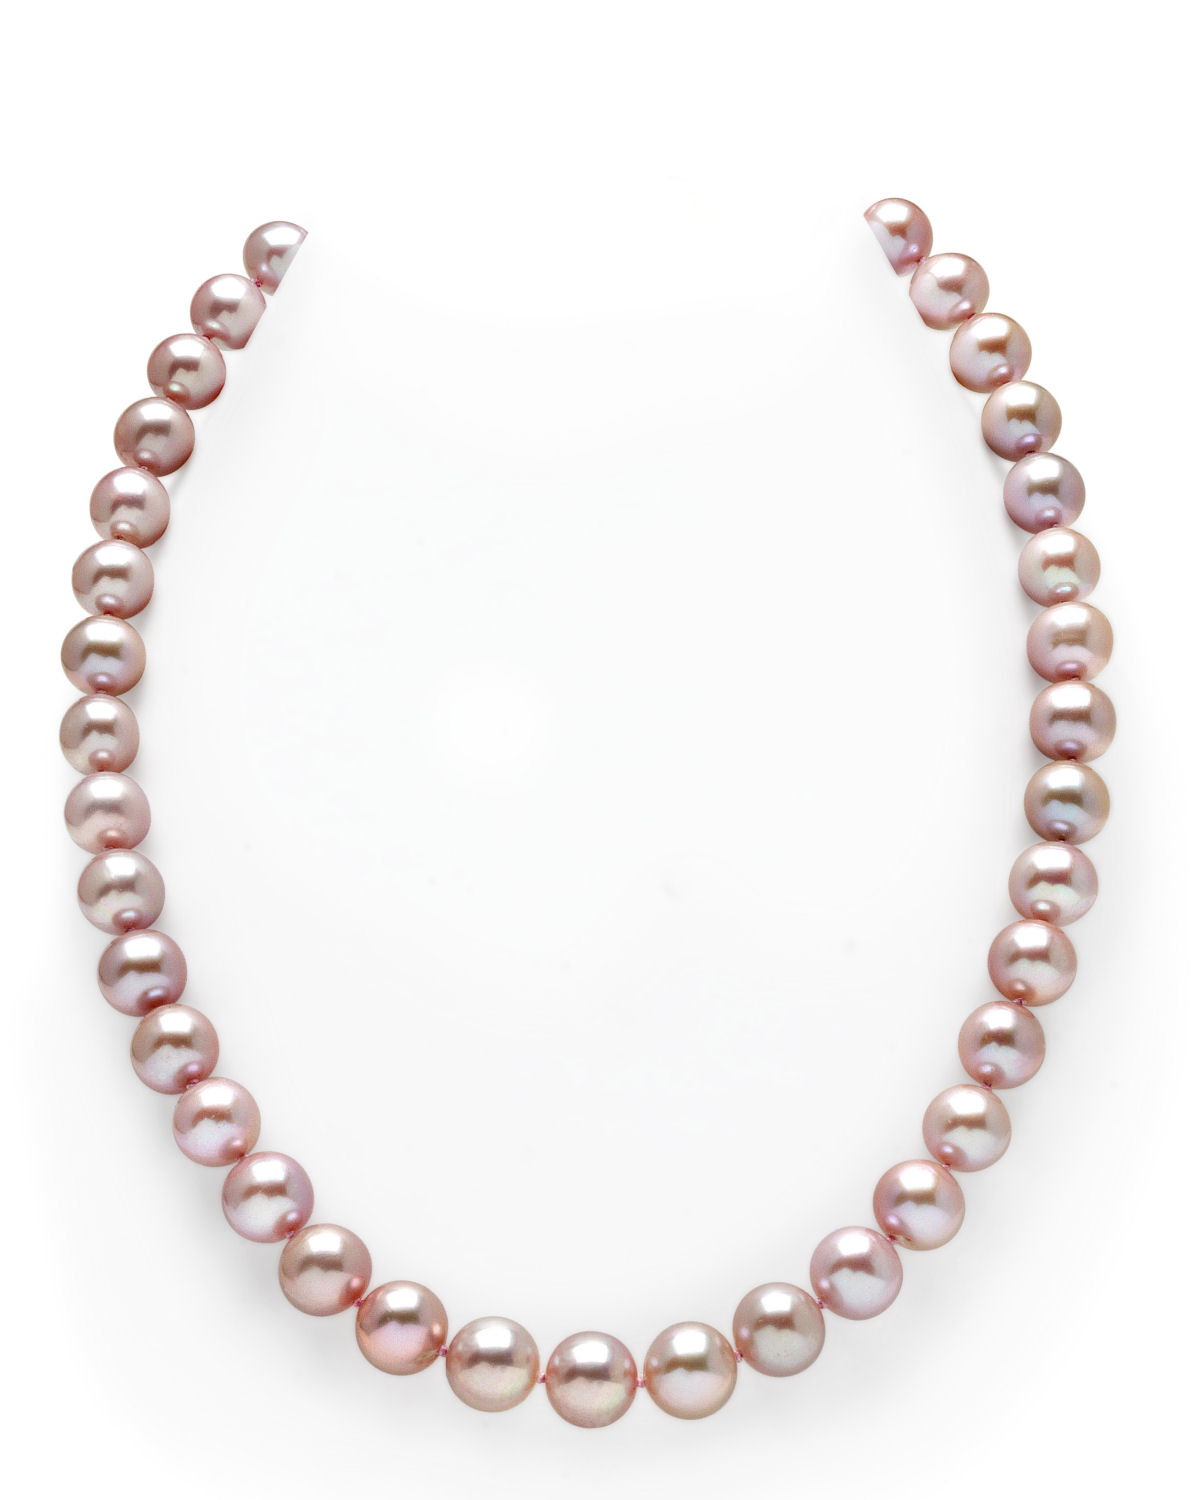 c4e8a7138 10-11mm Pink Freshwater Pearl Necklace - AAAA Quality